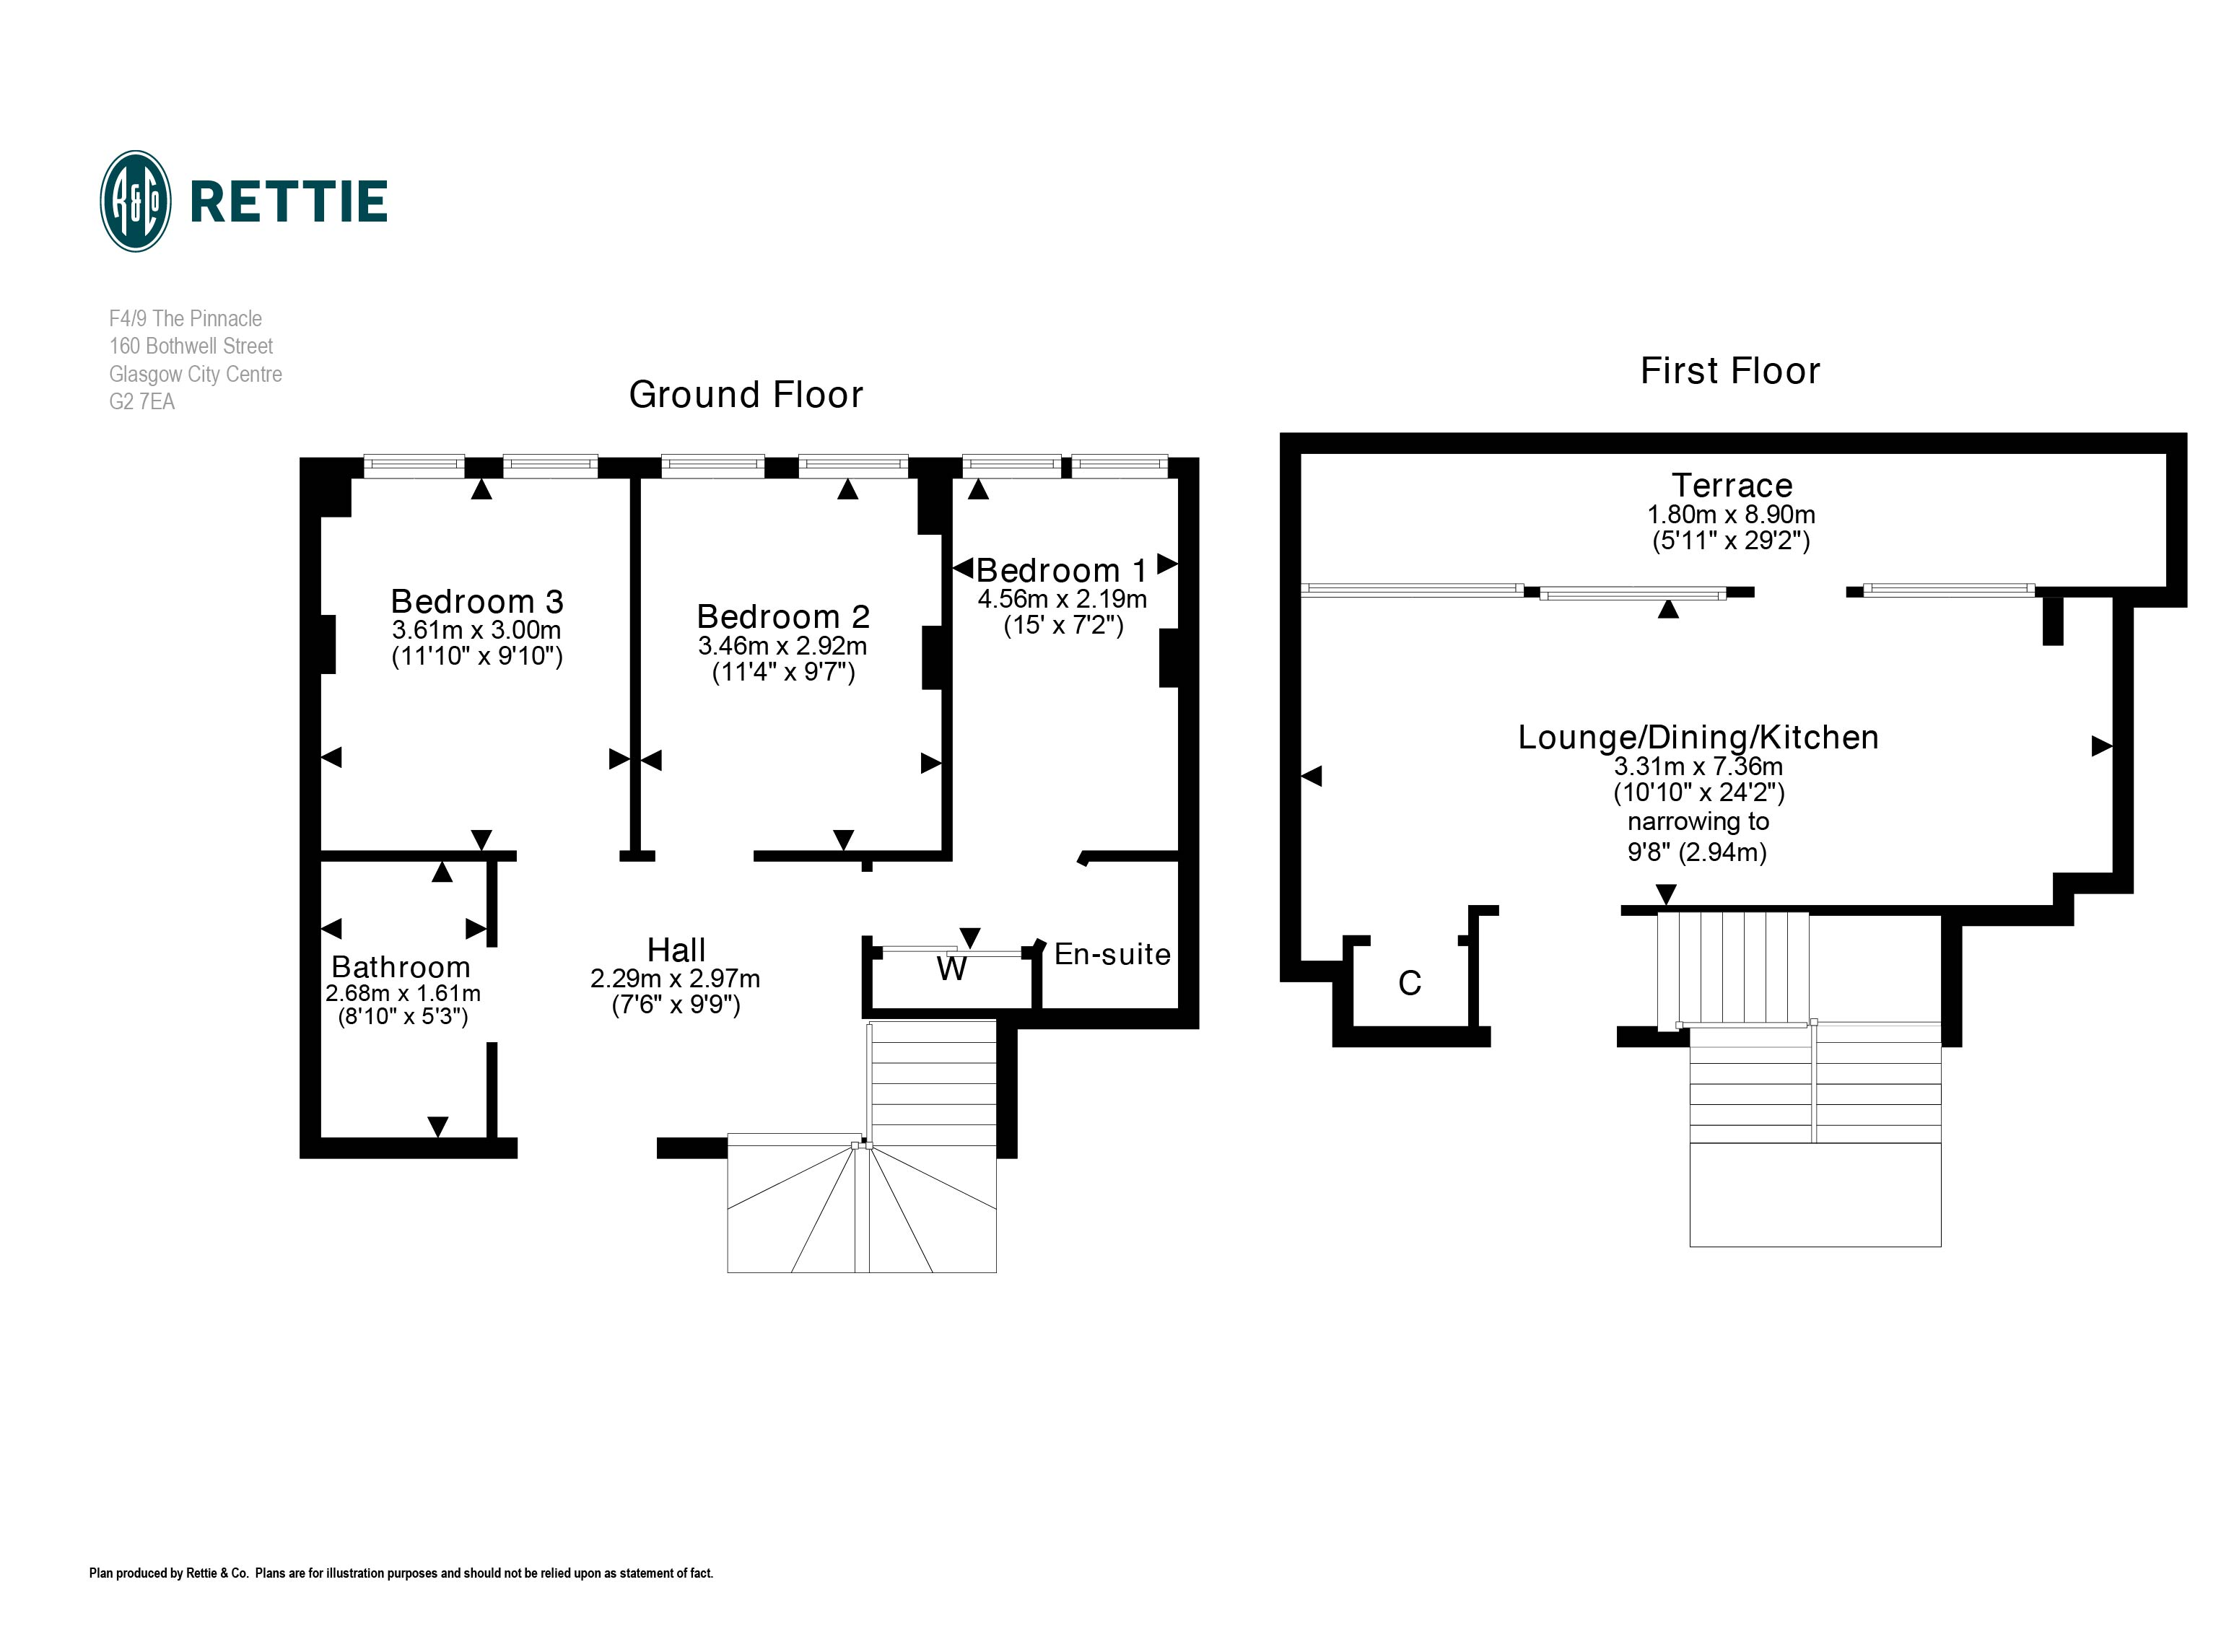 Floorplans for The Pinnacle, 160 Bothwell Street, Glasgow City Centre, G2